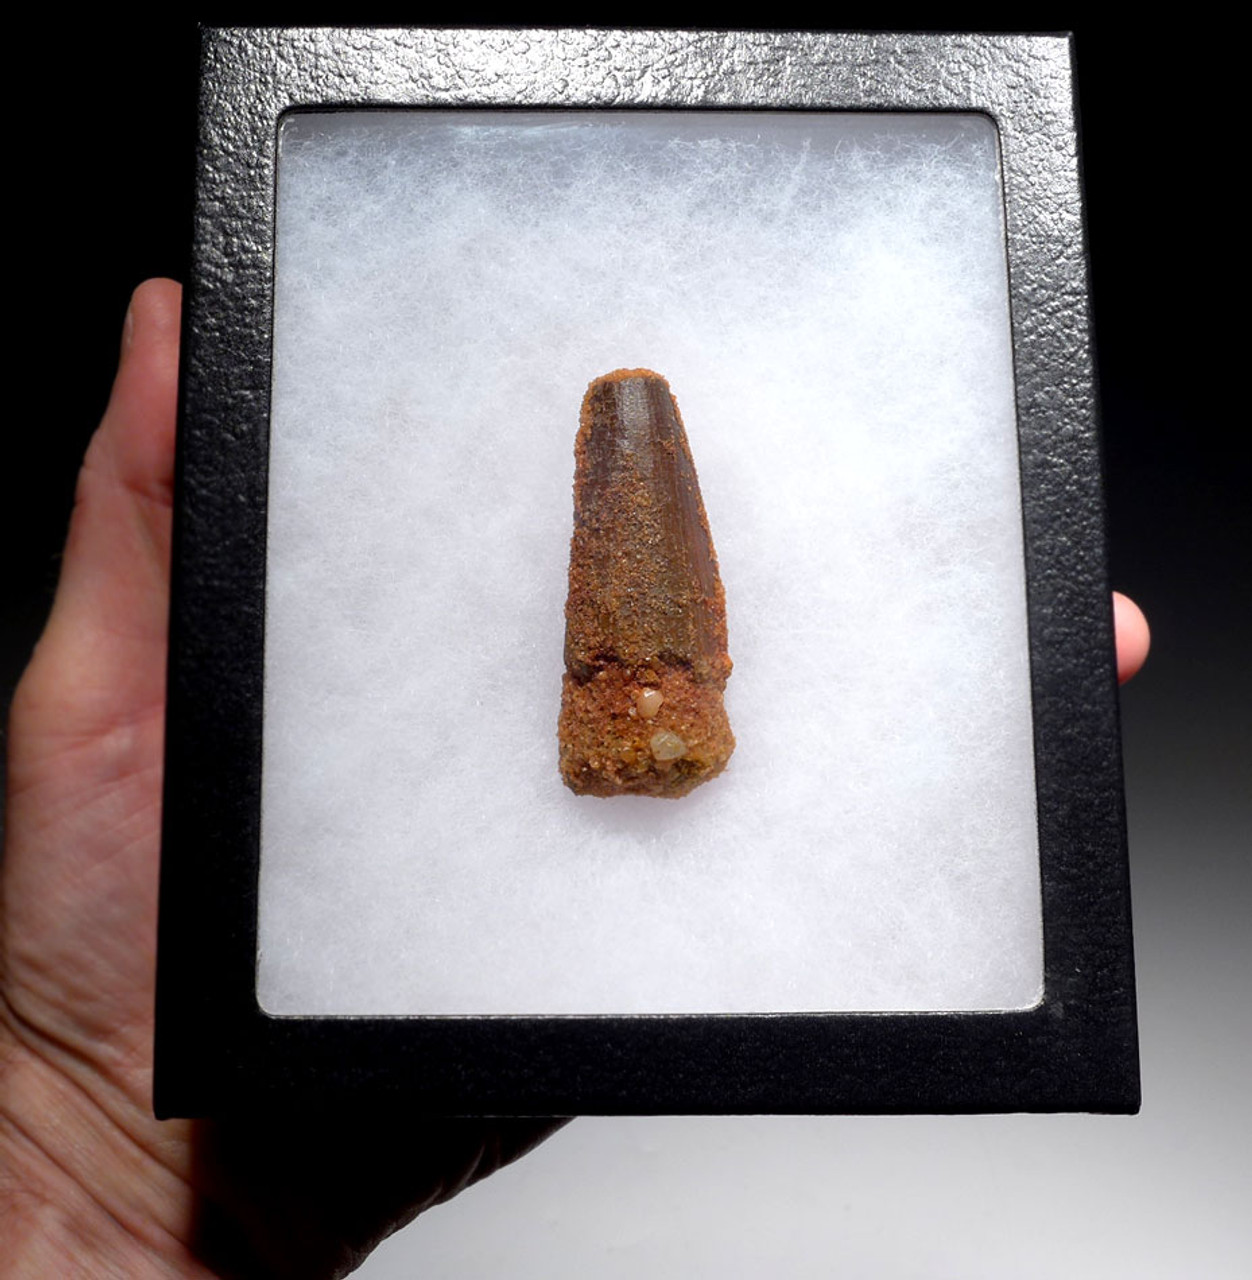 AFFORDABLE 2.4 INCH SPINOSAURUS GENUINE DINOSAUR FOSSIL TOOTH *DT5-424